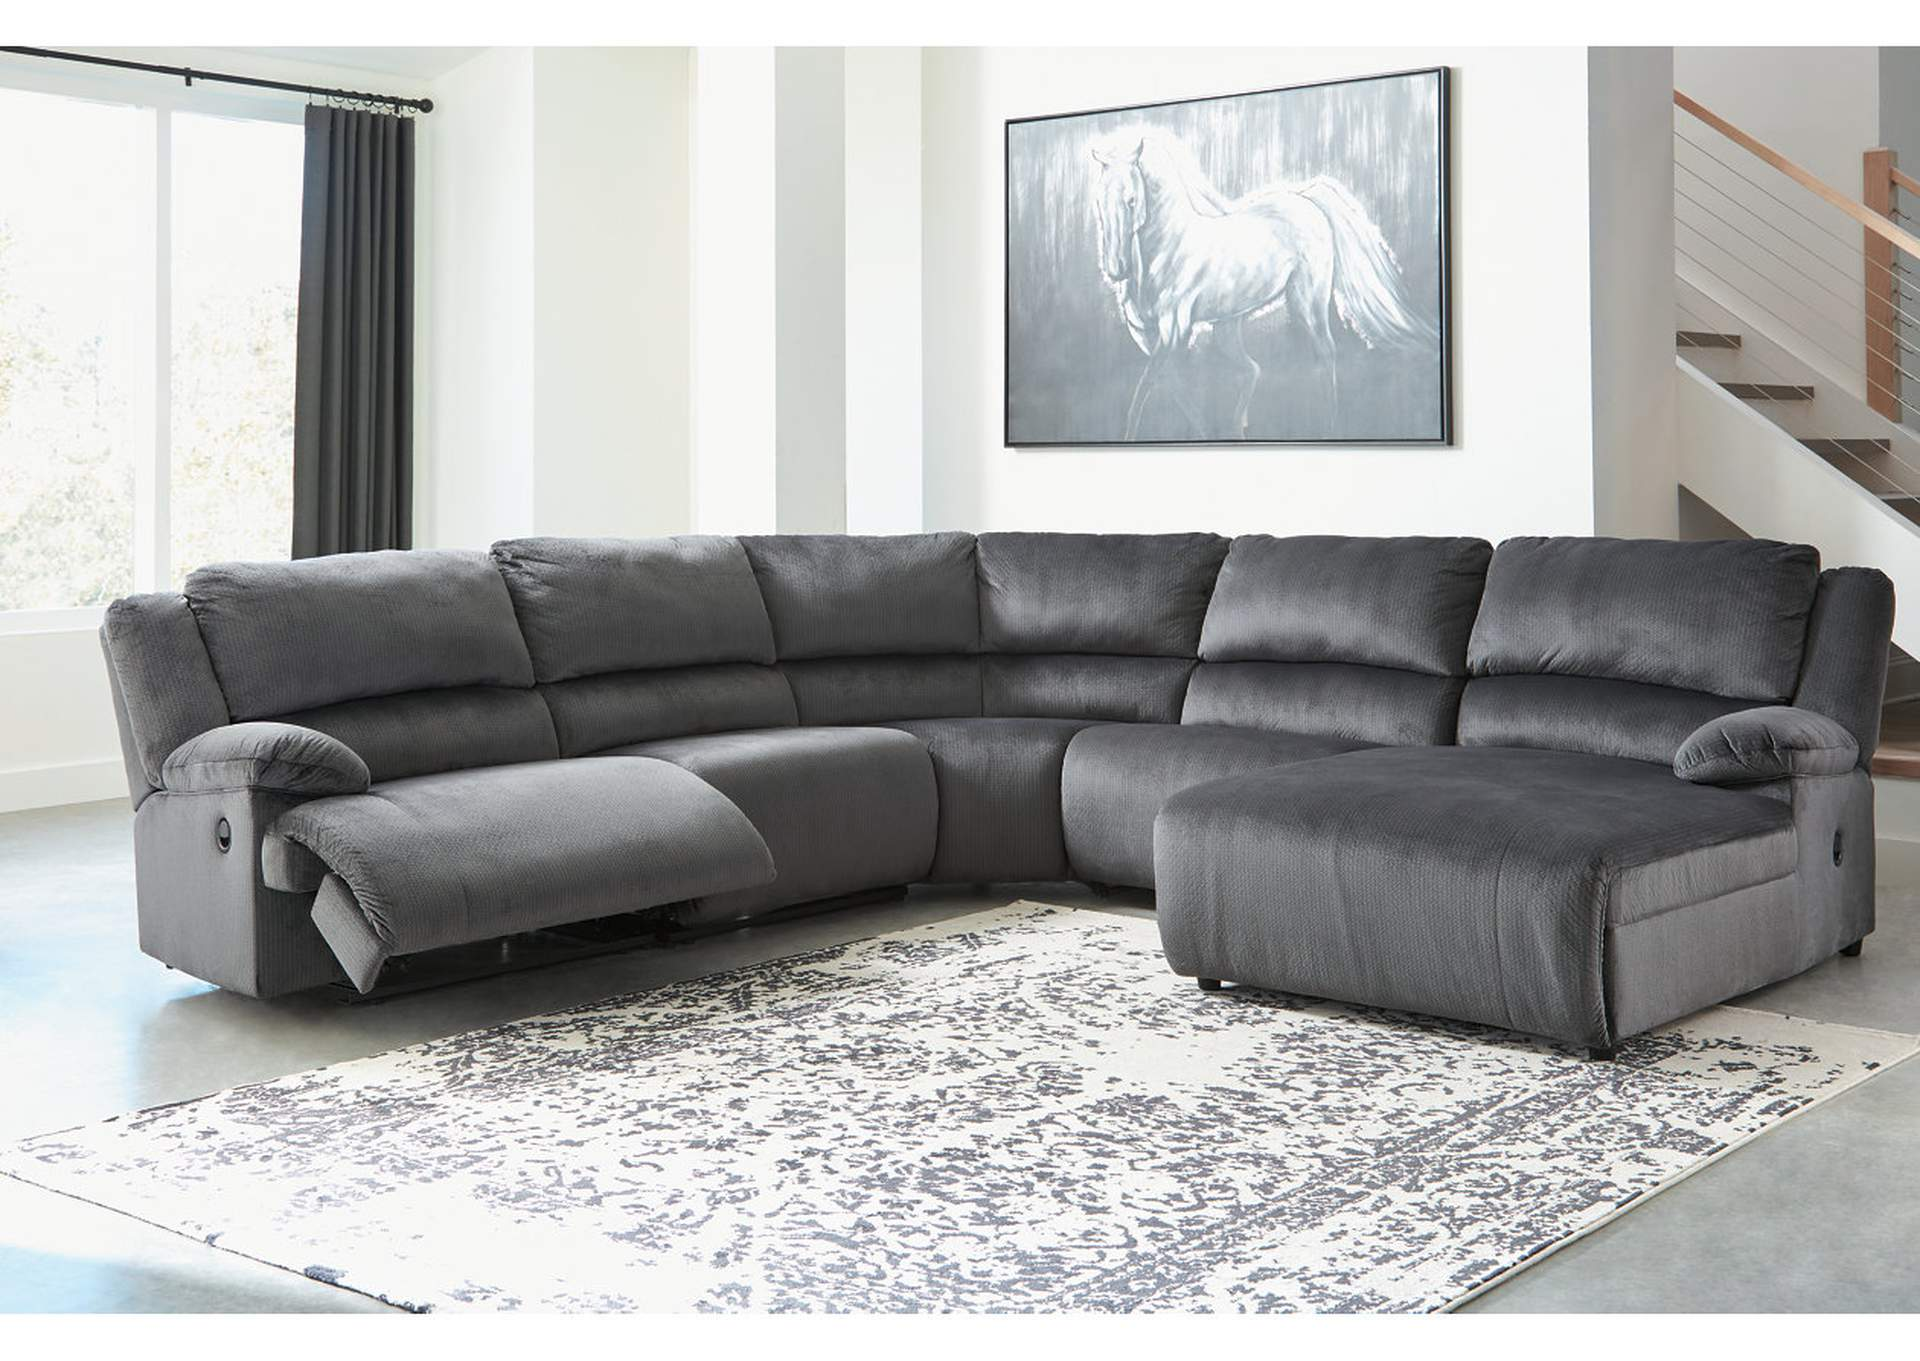 Strange Ivan Smith Clonmel Charcoal Reclining Raf Chaise Sectional Gmtry Best Dining Table And Chair Ideas Images Gmtryco